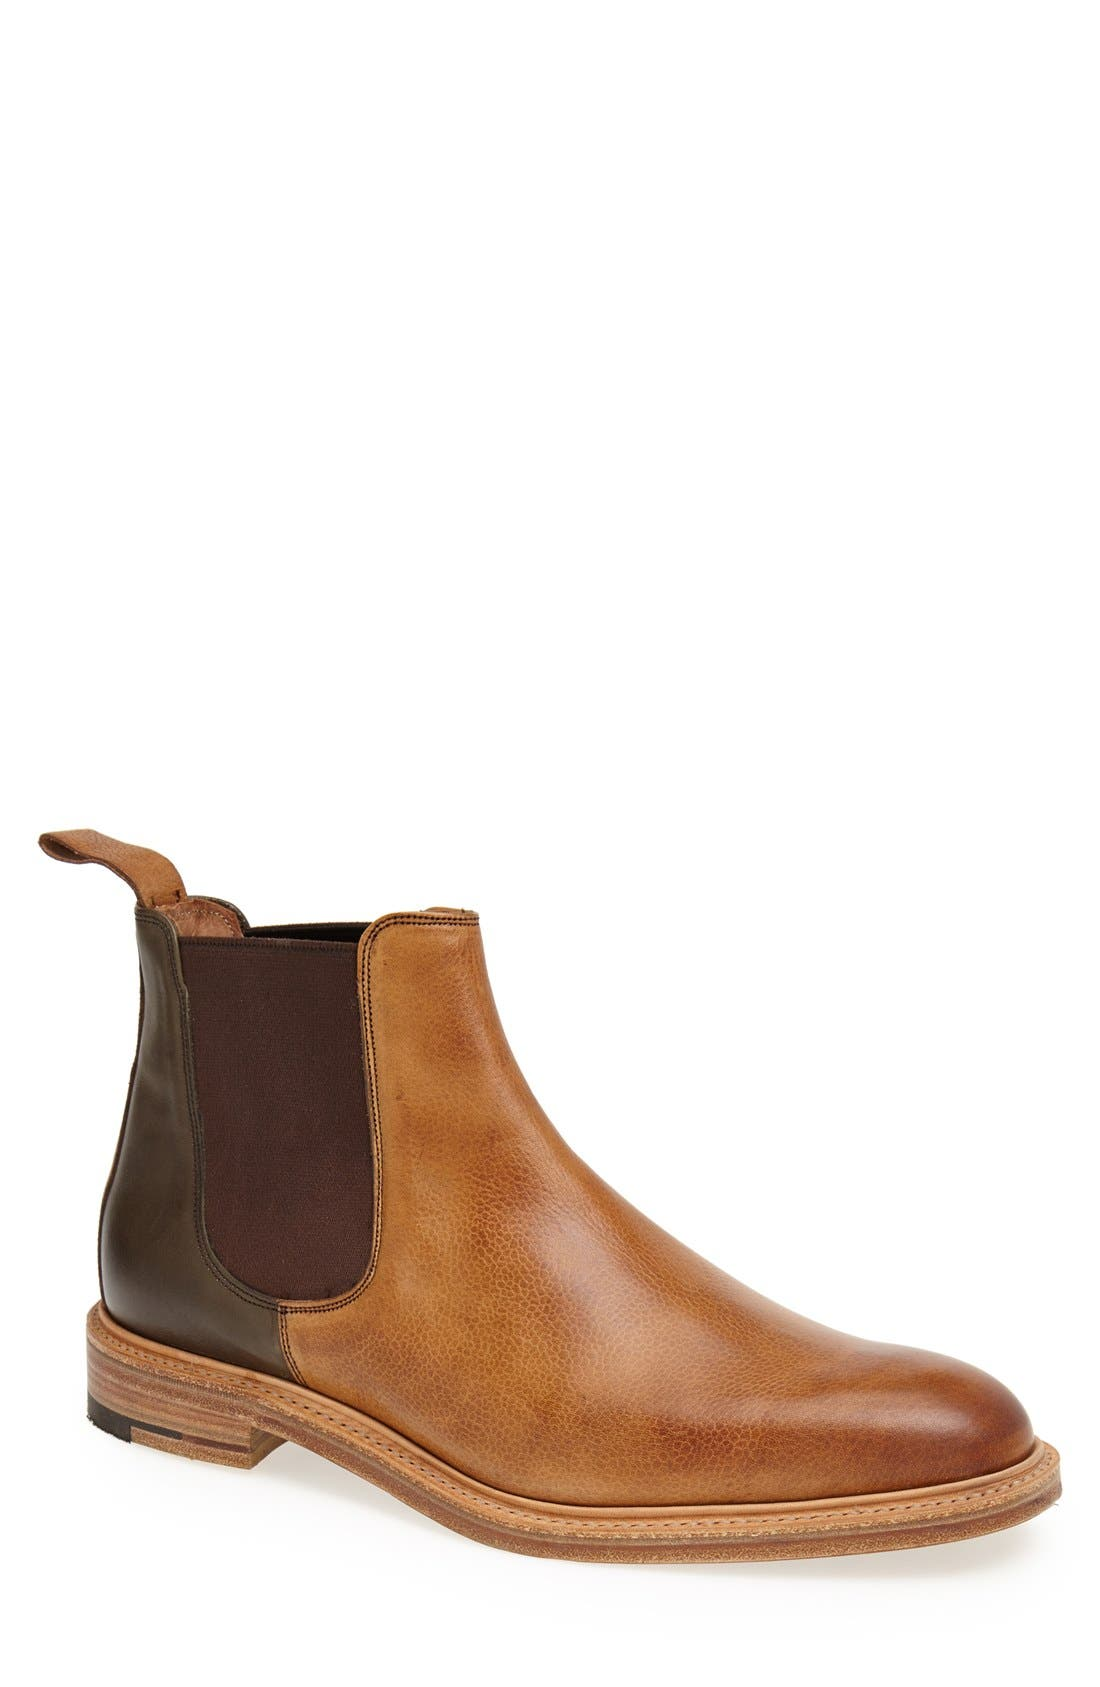 Alternate Image 1 Selected - Northern Cobbler Chelsea Boot (Men)